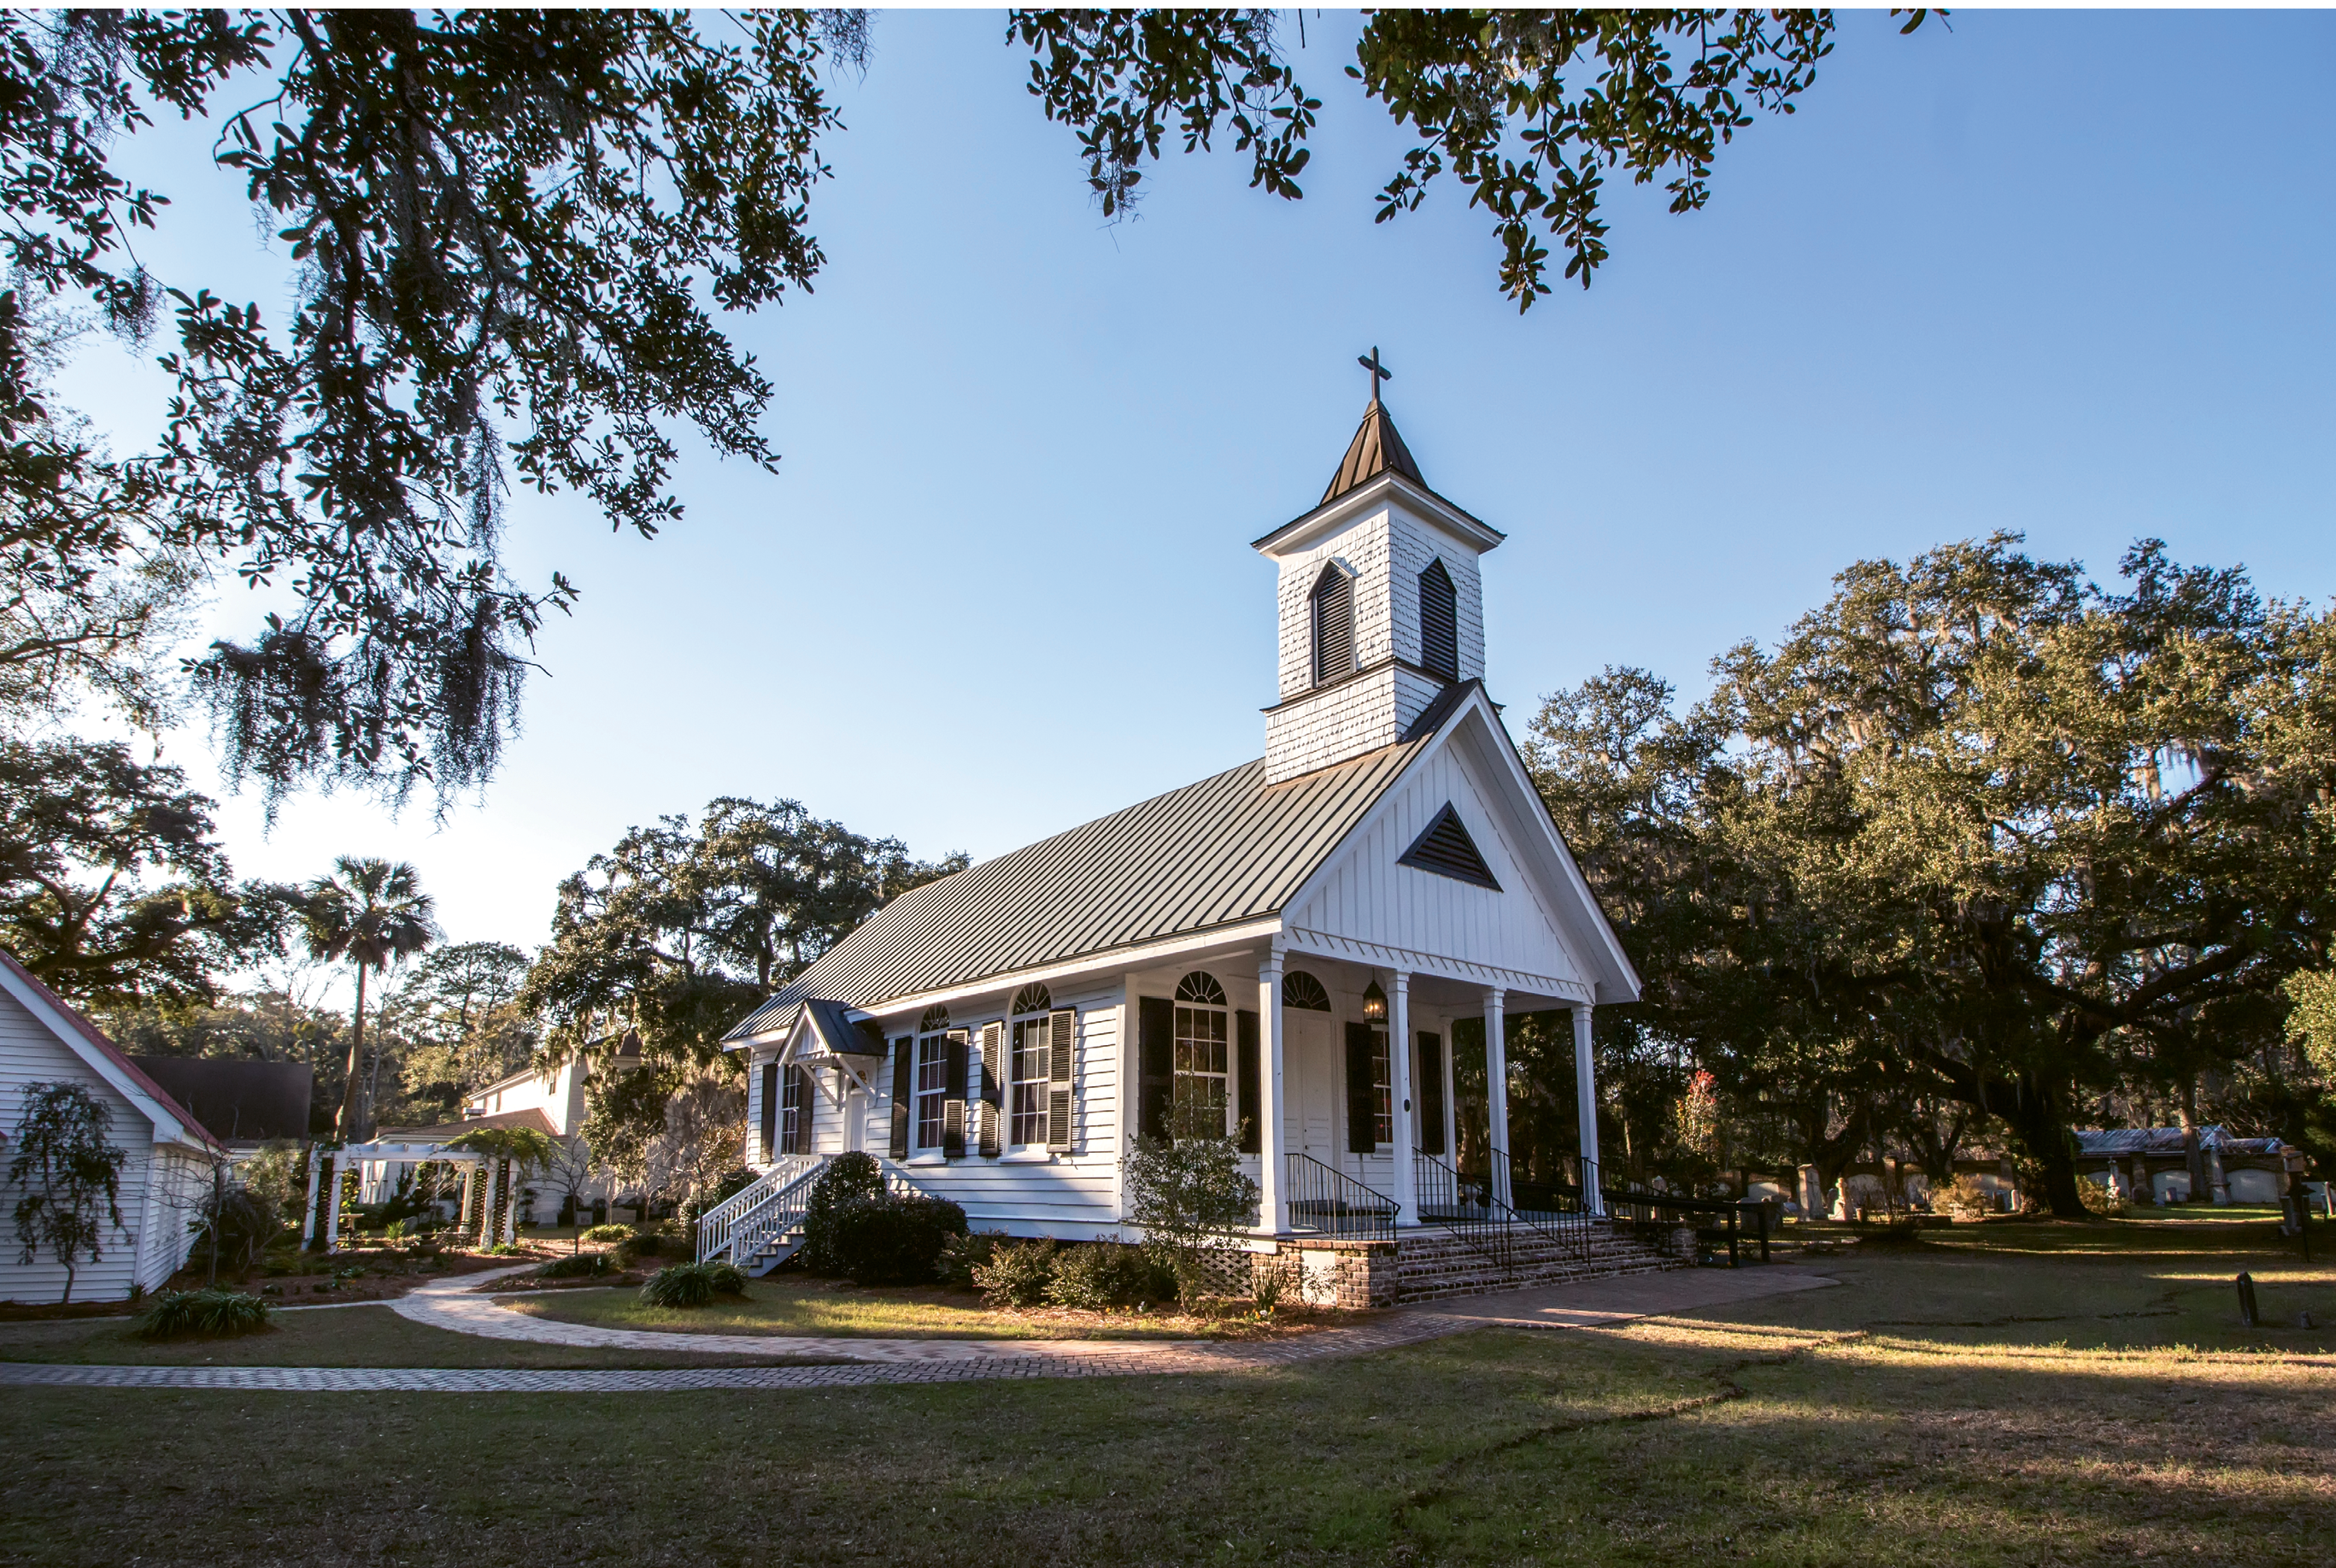 Trinity Episcopal Church, Edisto Island: The cross on the steeple was given by Eldon D. Hunter in honor of his mother, Virginia Griffen Hunter (1869-1935).